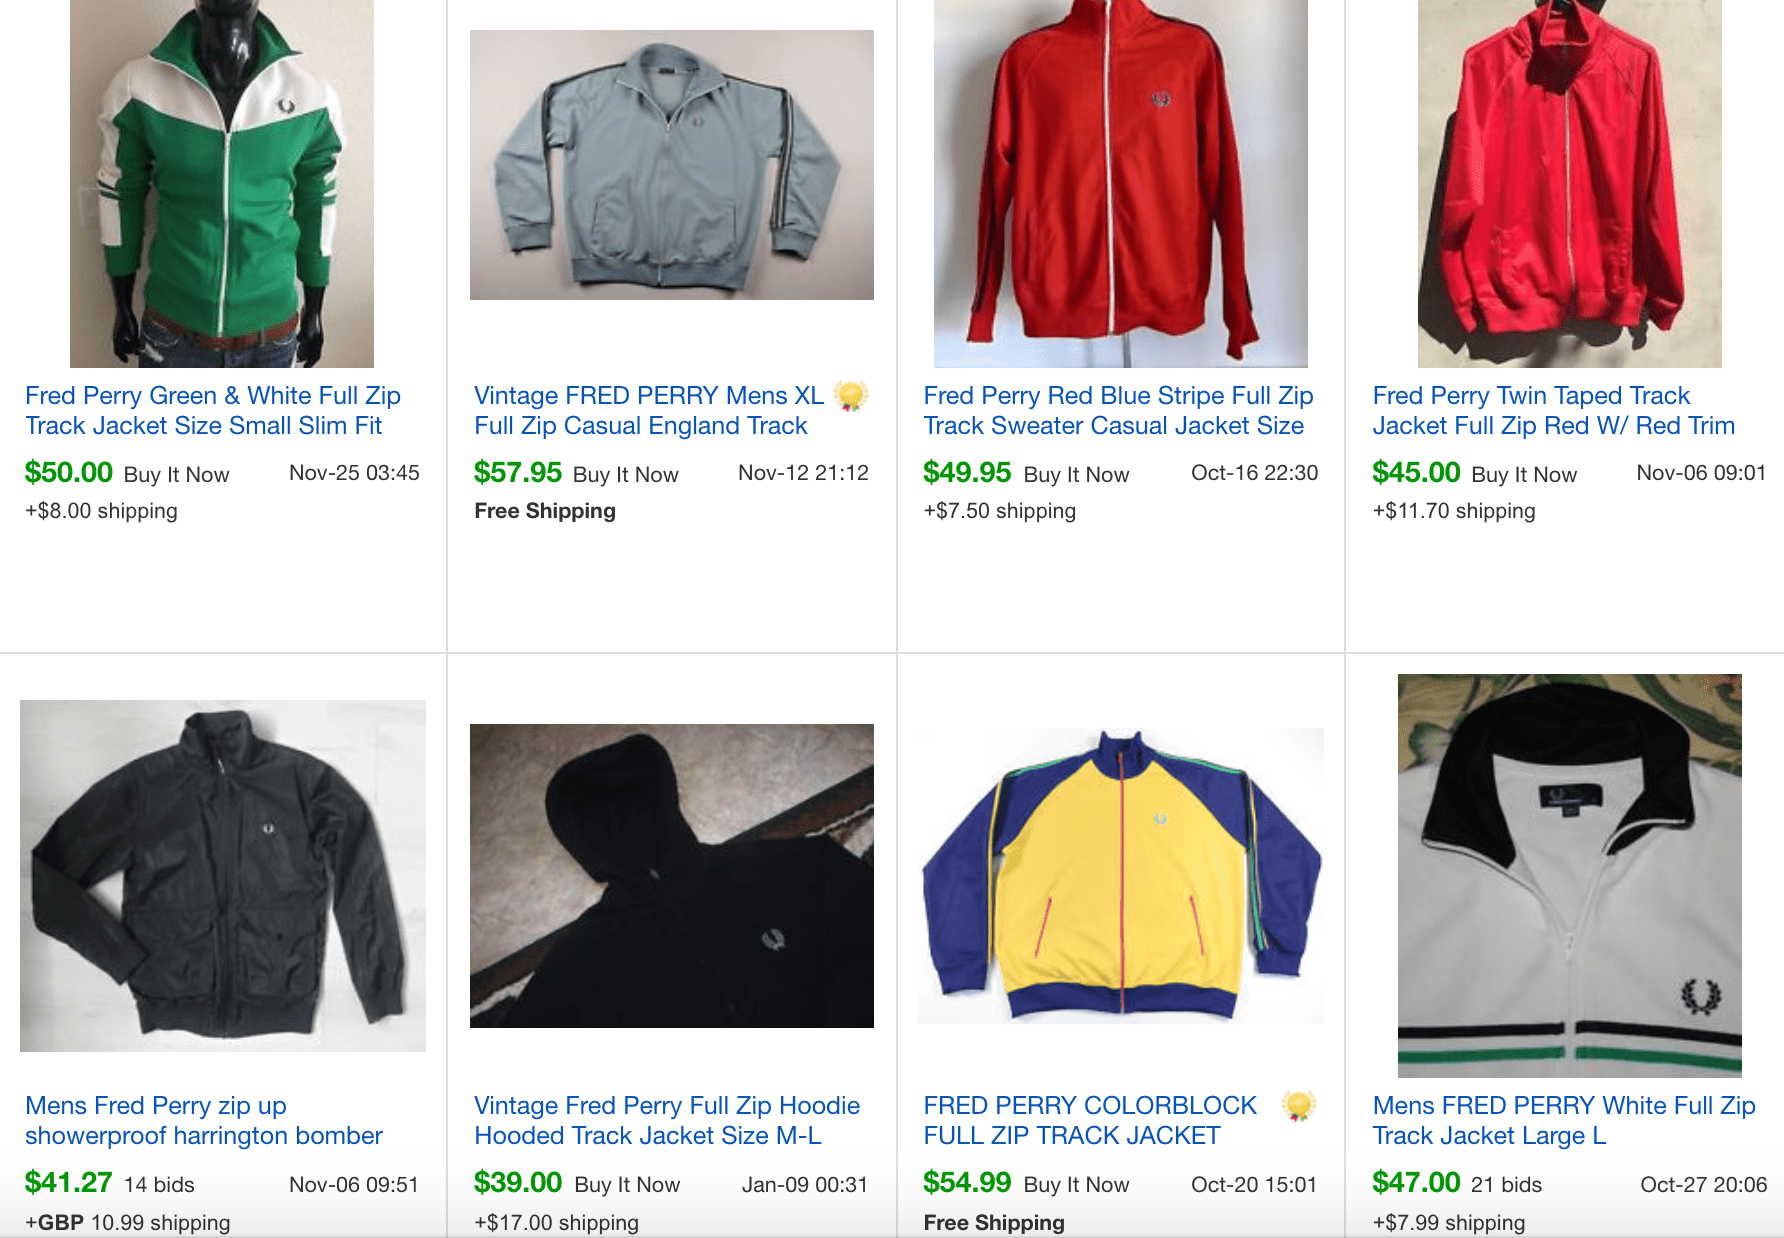 How To Make Money Reselling Fred Perry Jackets On Ebay Thrifteo